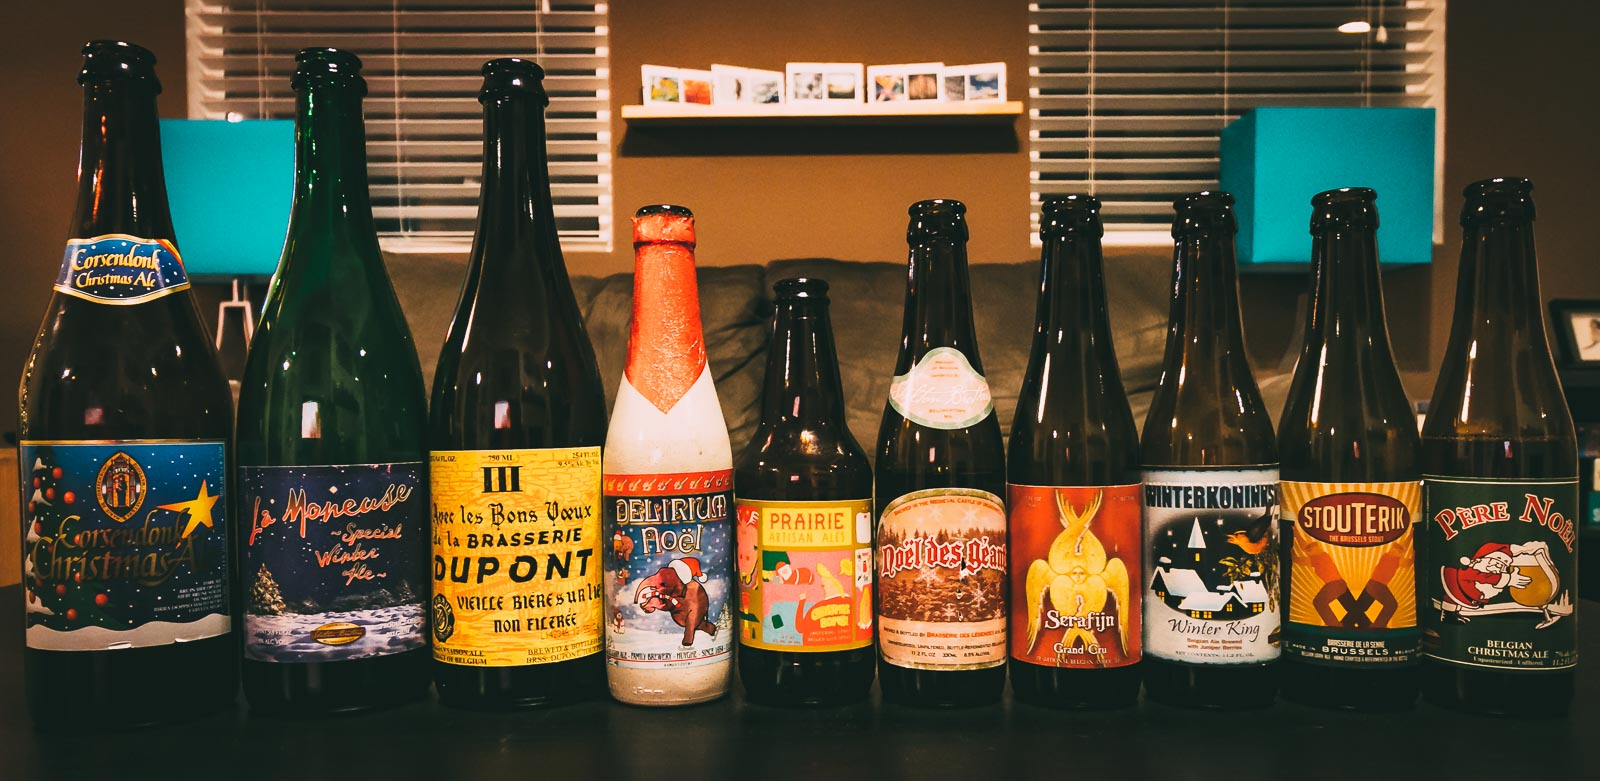 The 2016 Holiday Beers